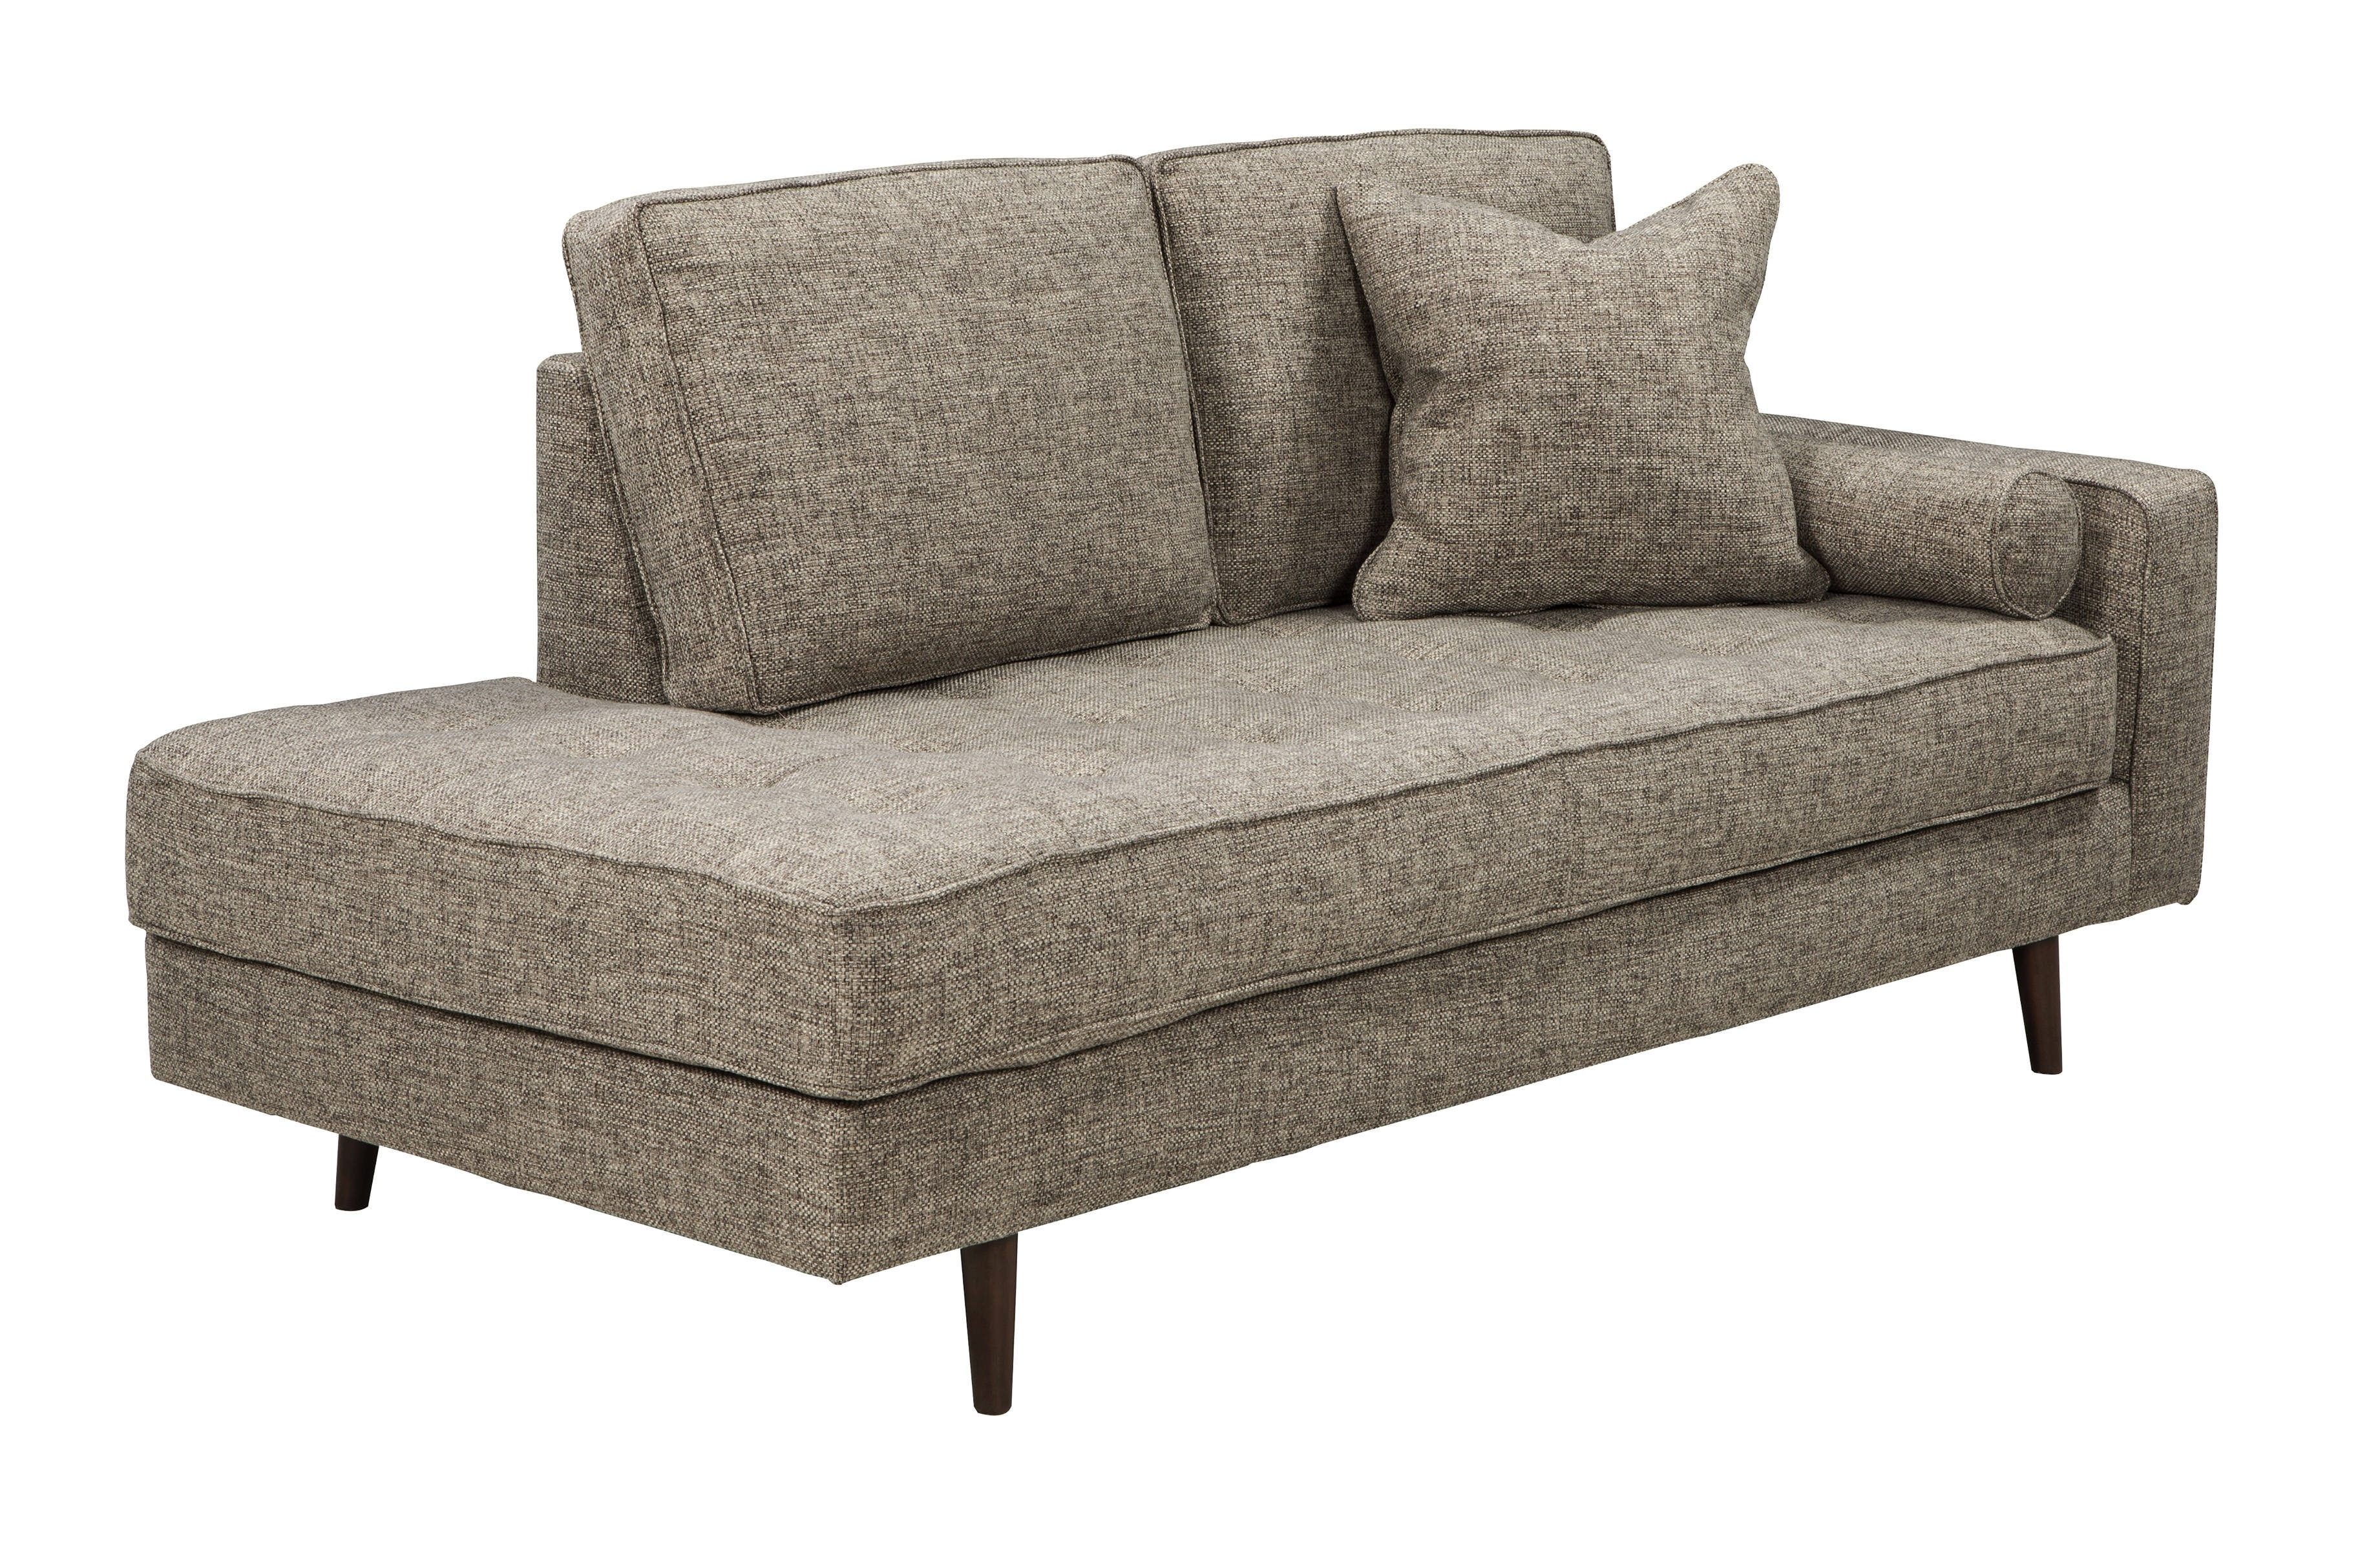 Ashley Furniture Chento Jute Raf Corner Chaise | The Classy Home in Lucy Dark Grey 2 Piece Sleeper Sectionals With Raf Chaise (Image 4 of 30)